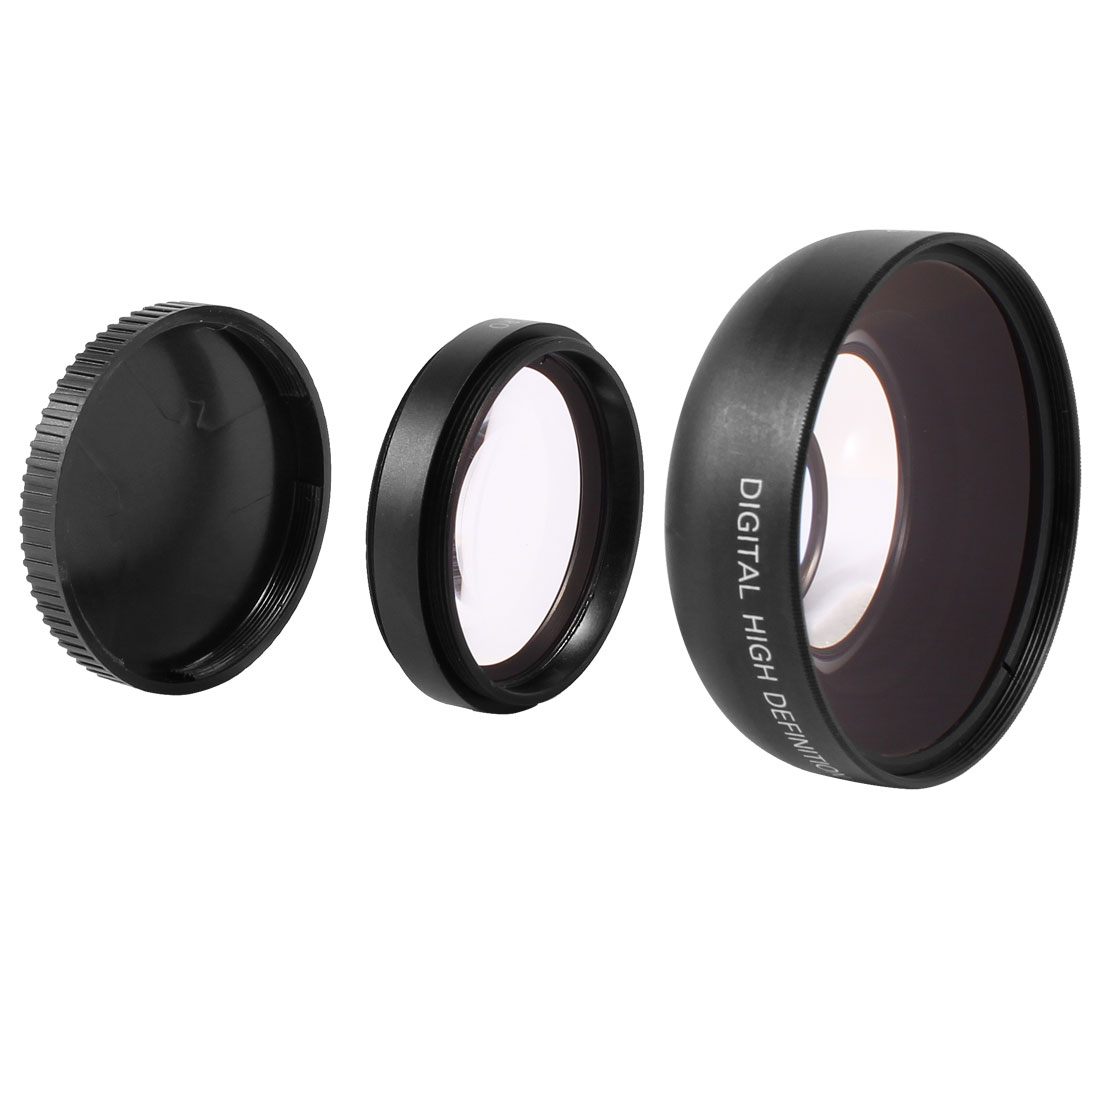 46mm 0.45X Magnifier Multi Coated Wide Angle Macro Lens Filter for DSLR Camera